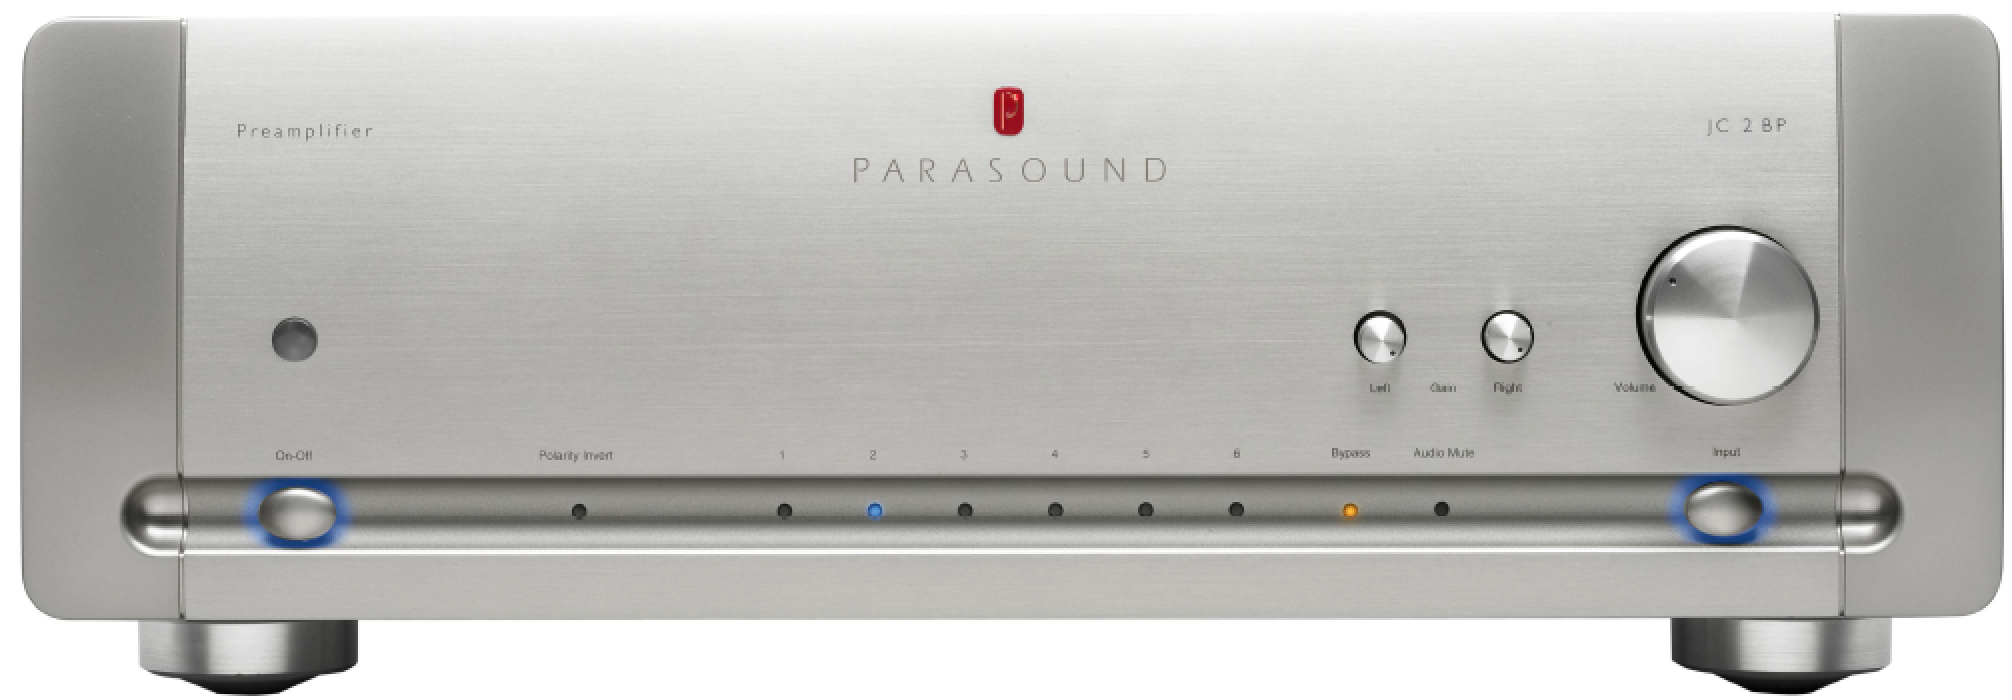 HALO by Parasound JC 2 BP Preamplifier